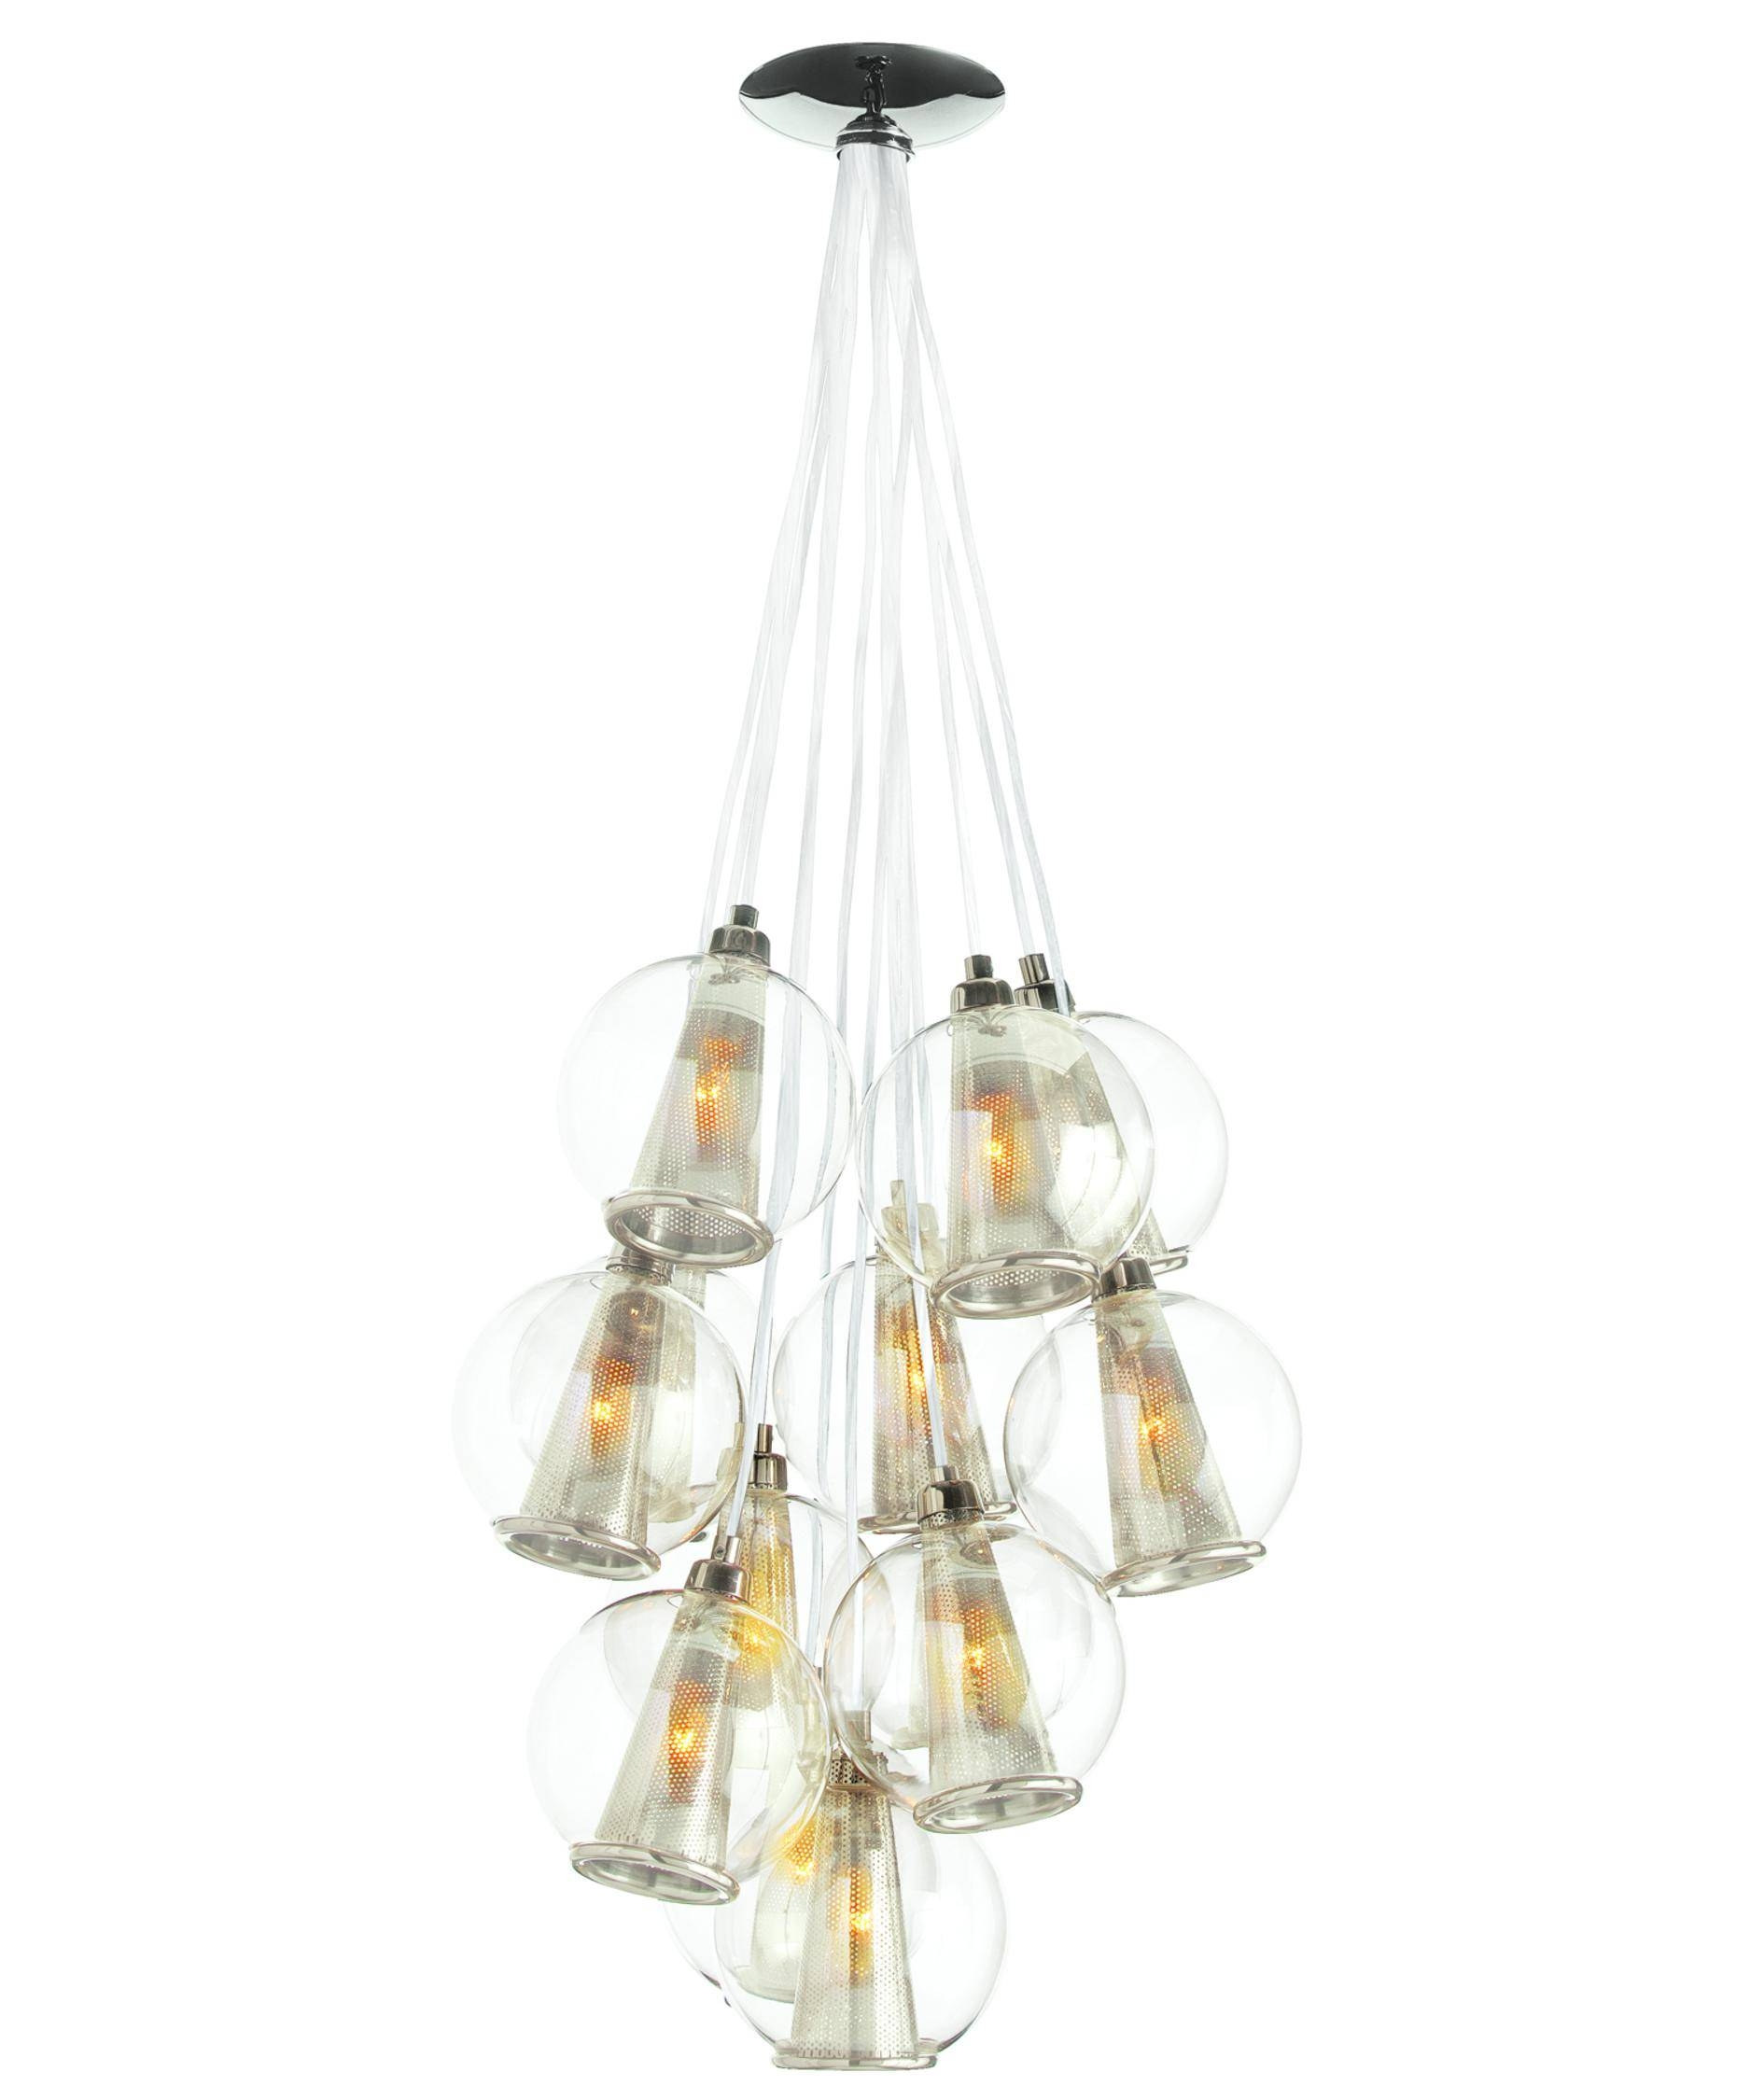 Arteriors Home Dk89921 Caviar 18 Inch Wide 1 Light Chandelier regarding Caviar Pendant Lights (Image 7 of 15)